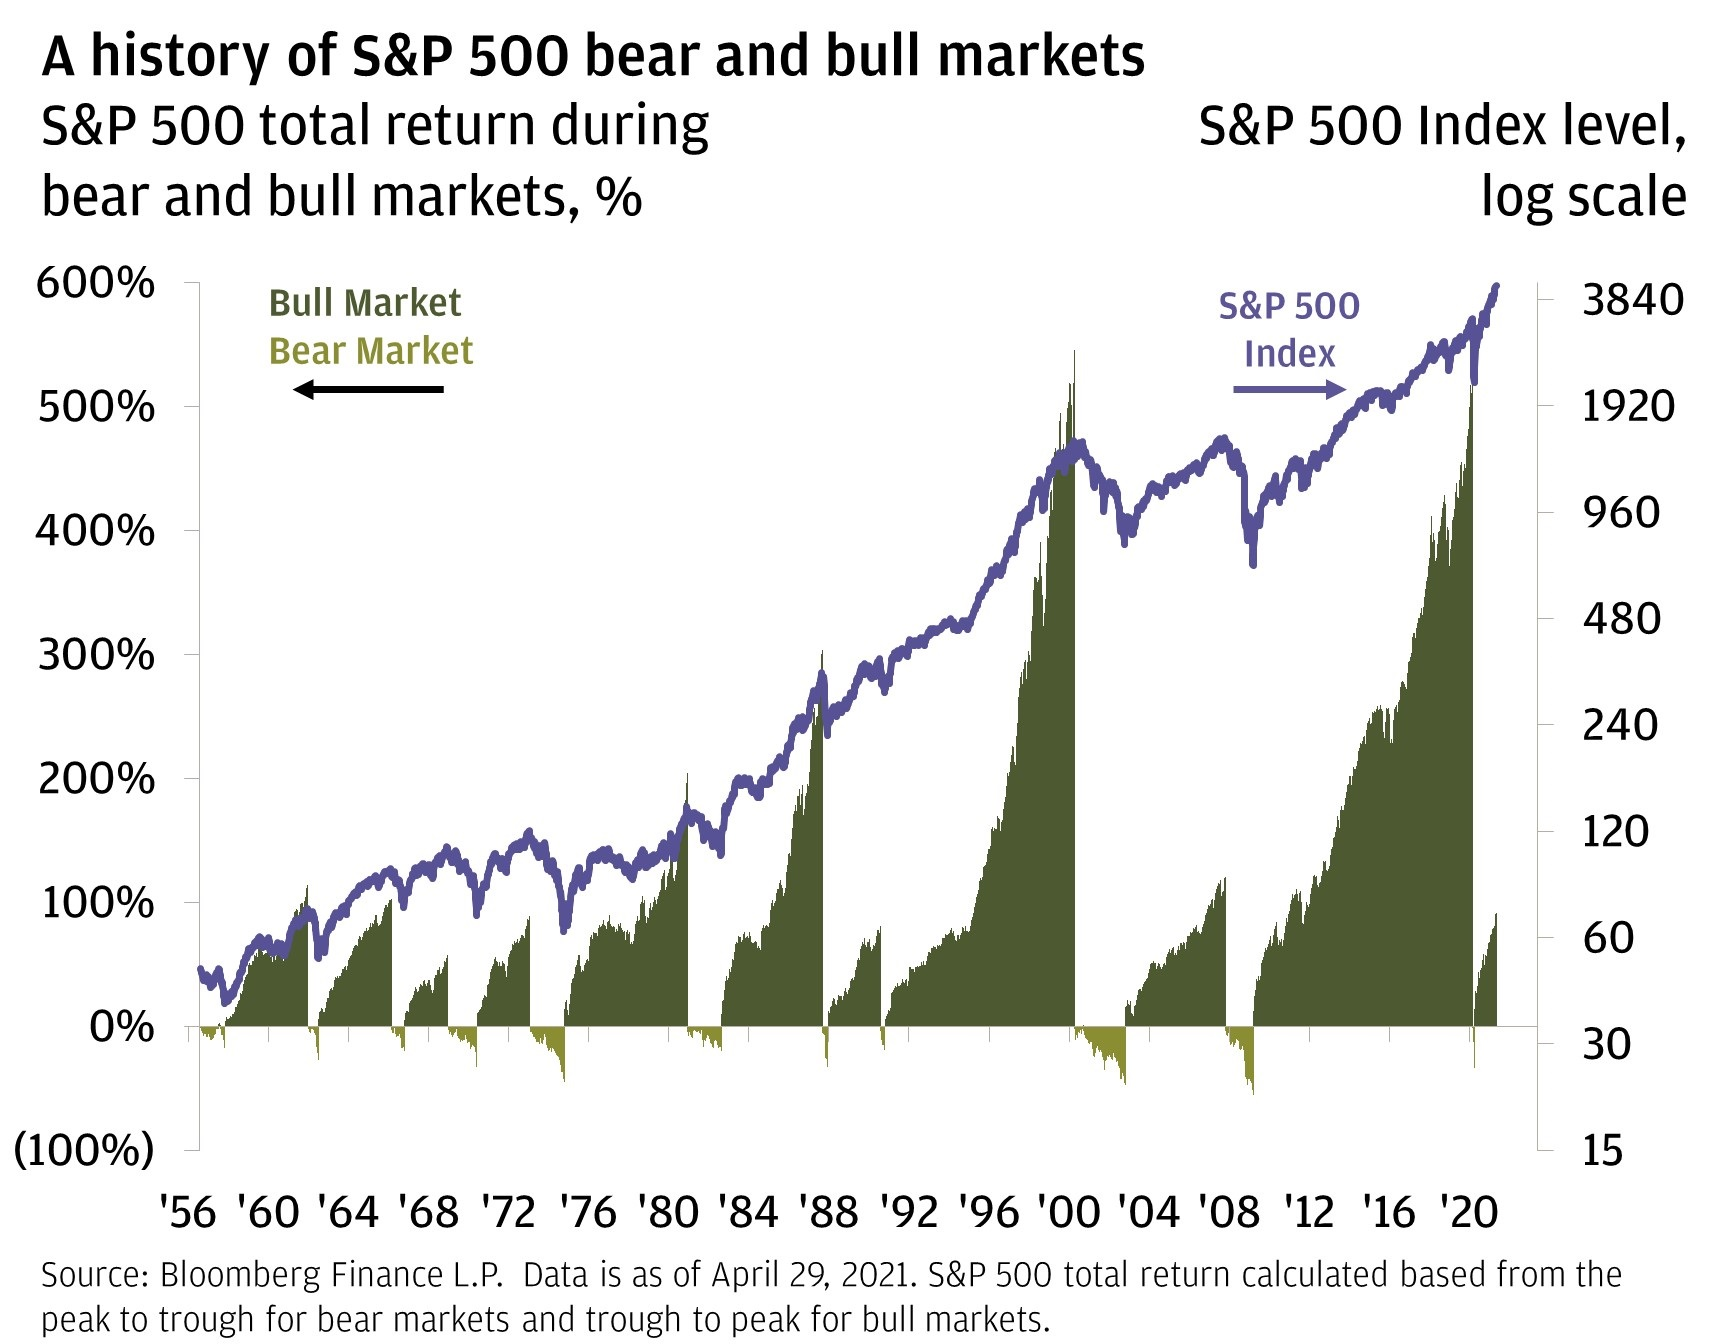 Chart 6: A history of S&P 500 bear and bull markets.